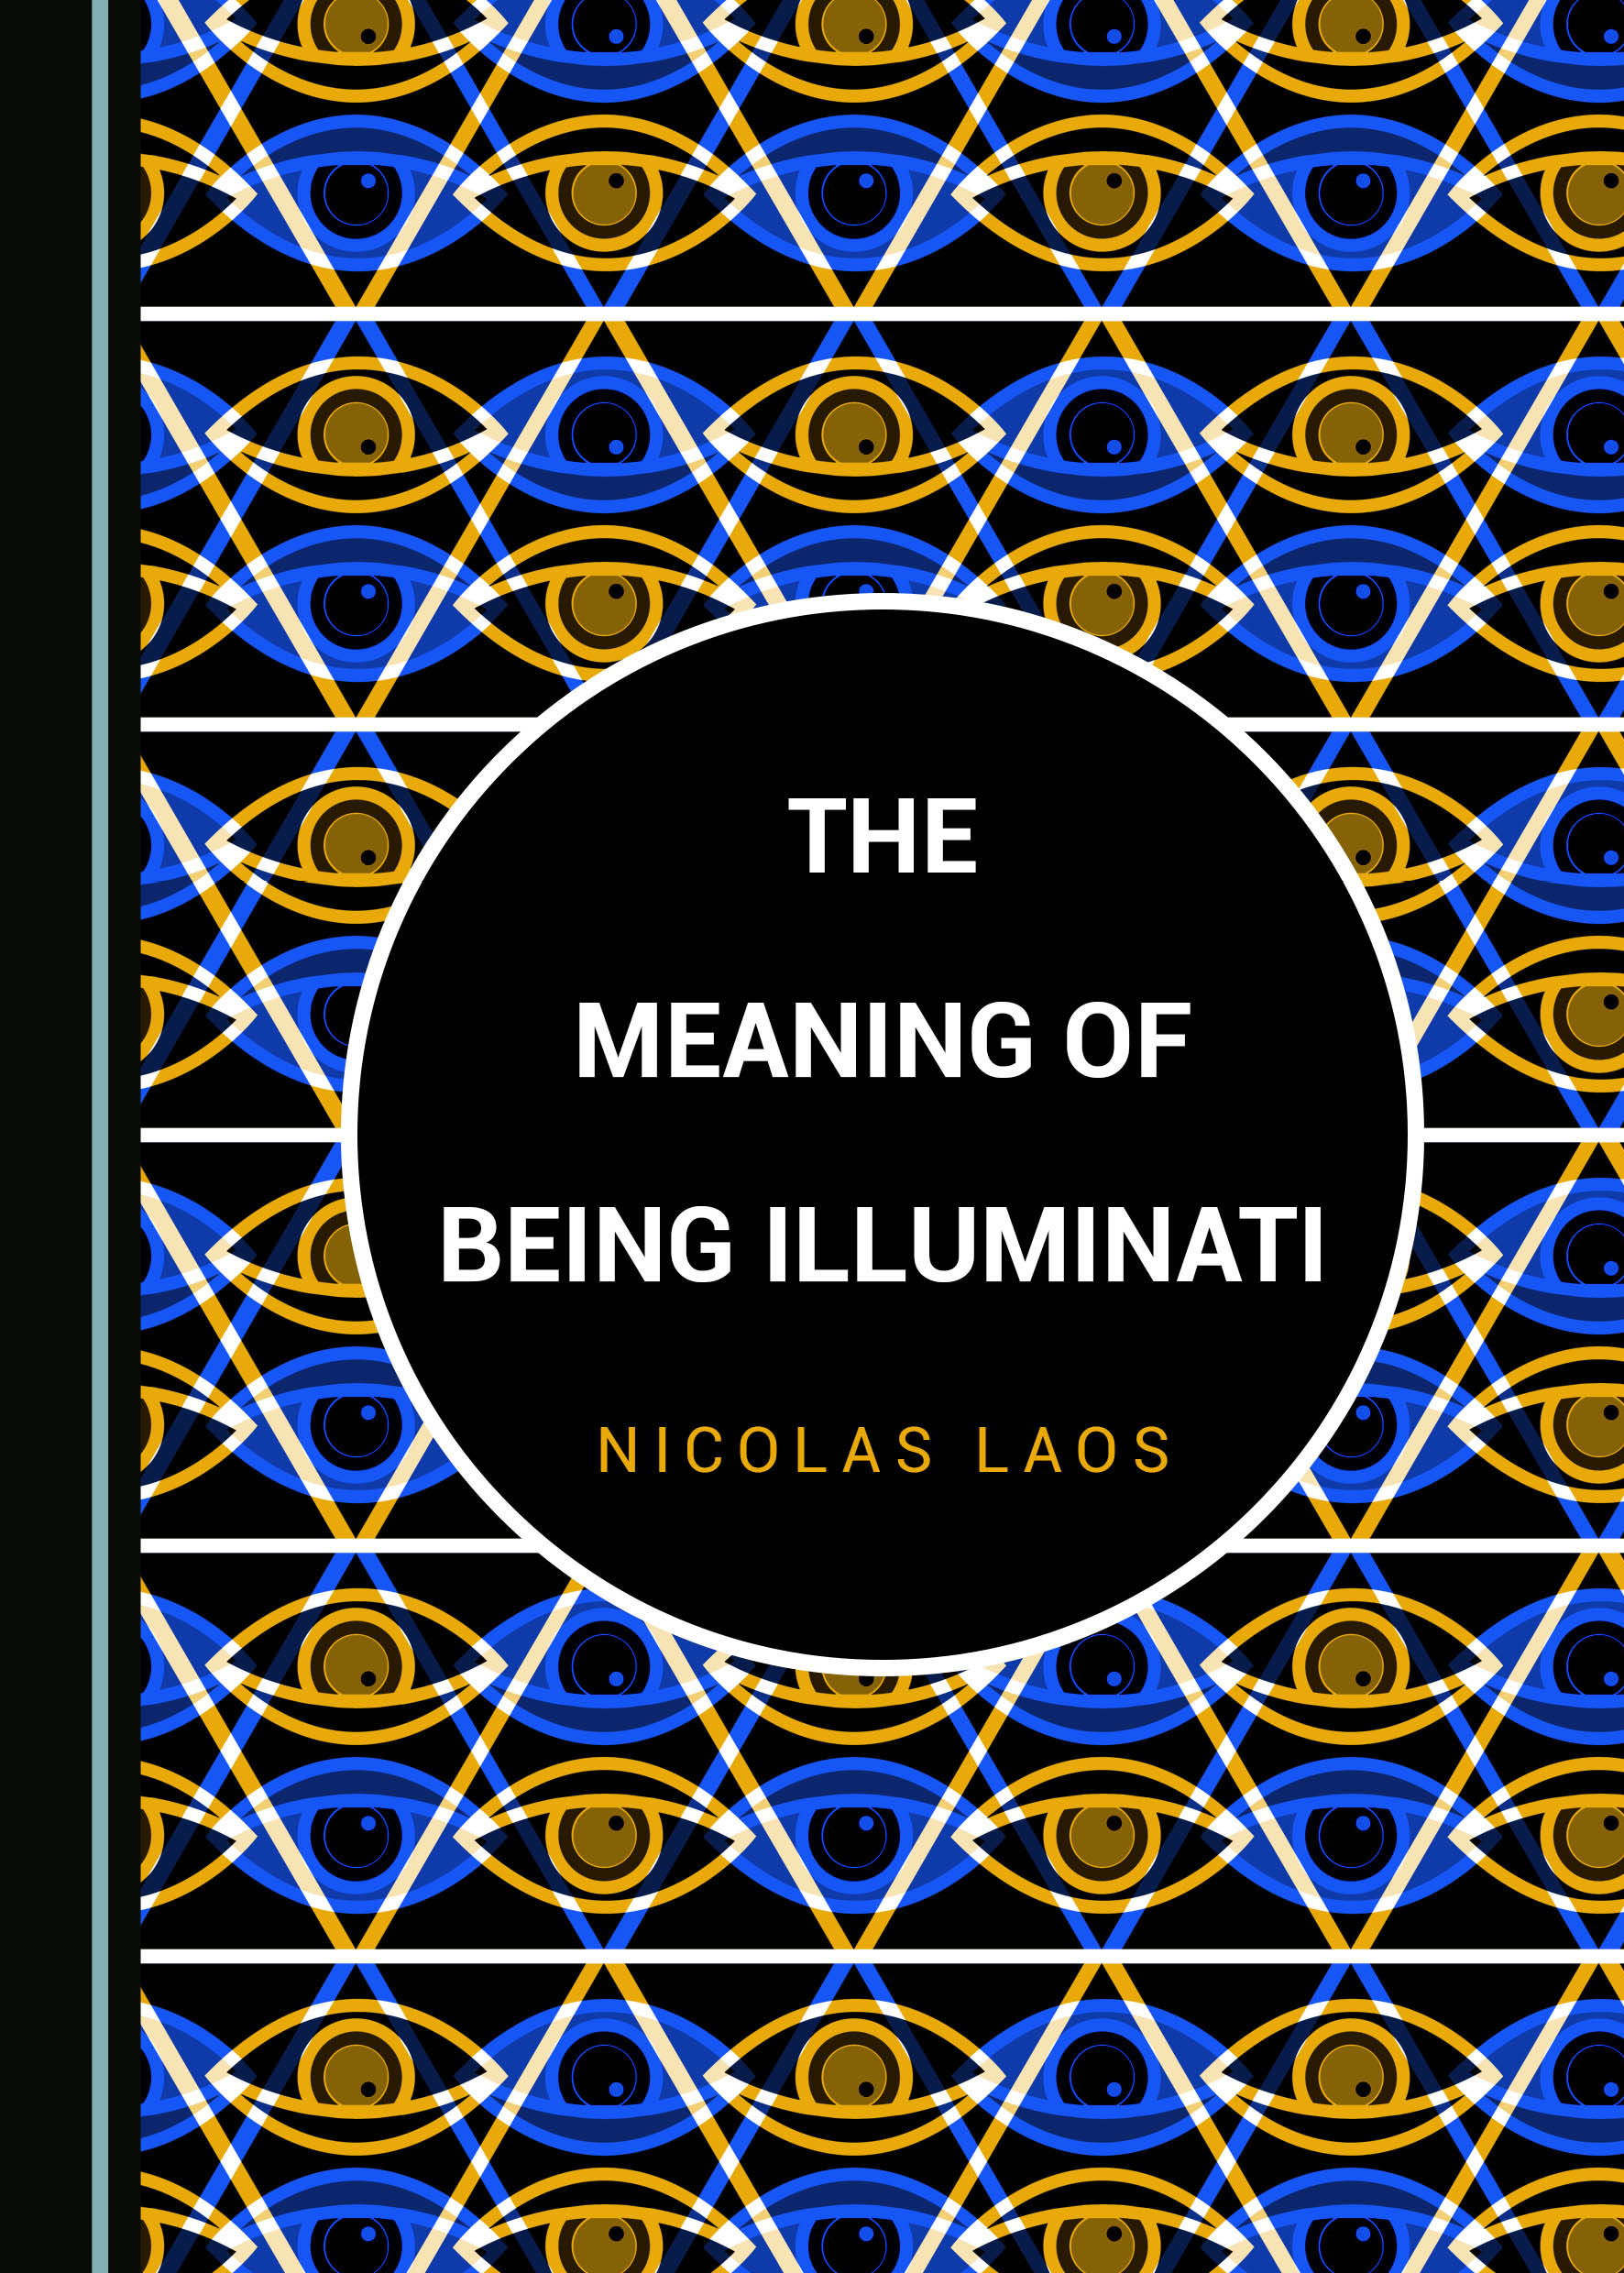 The Meaning of Being Illuminati